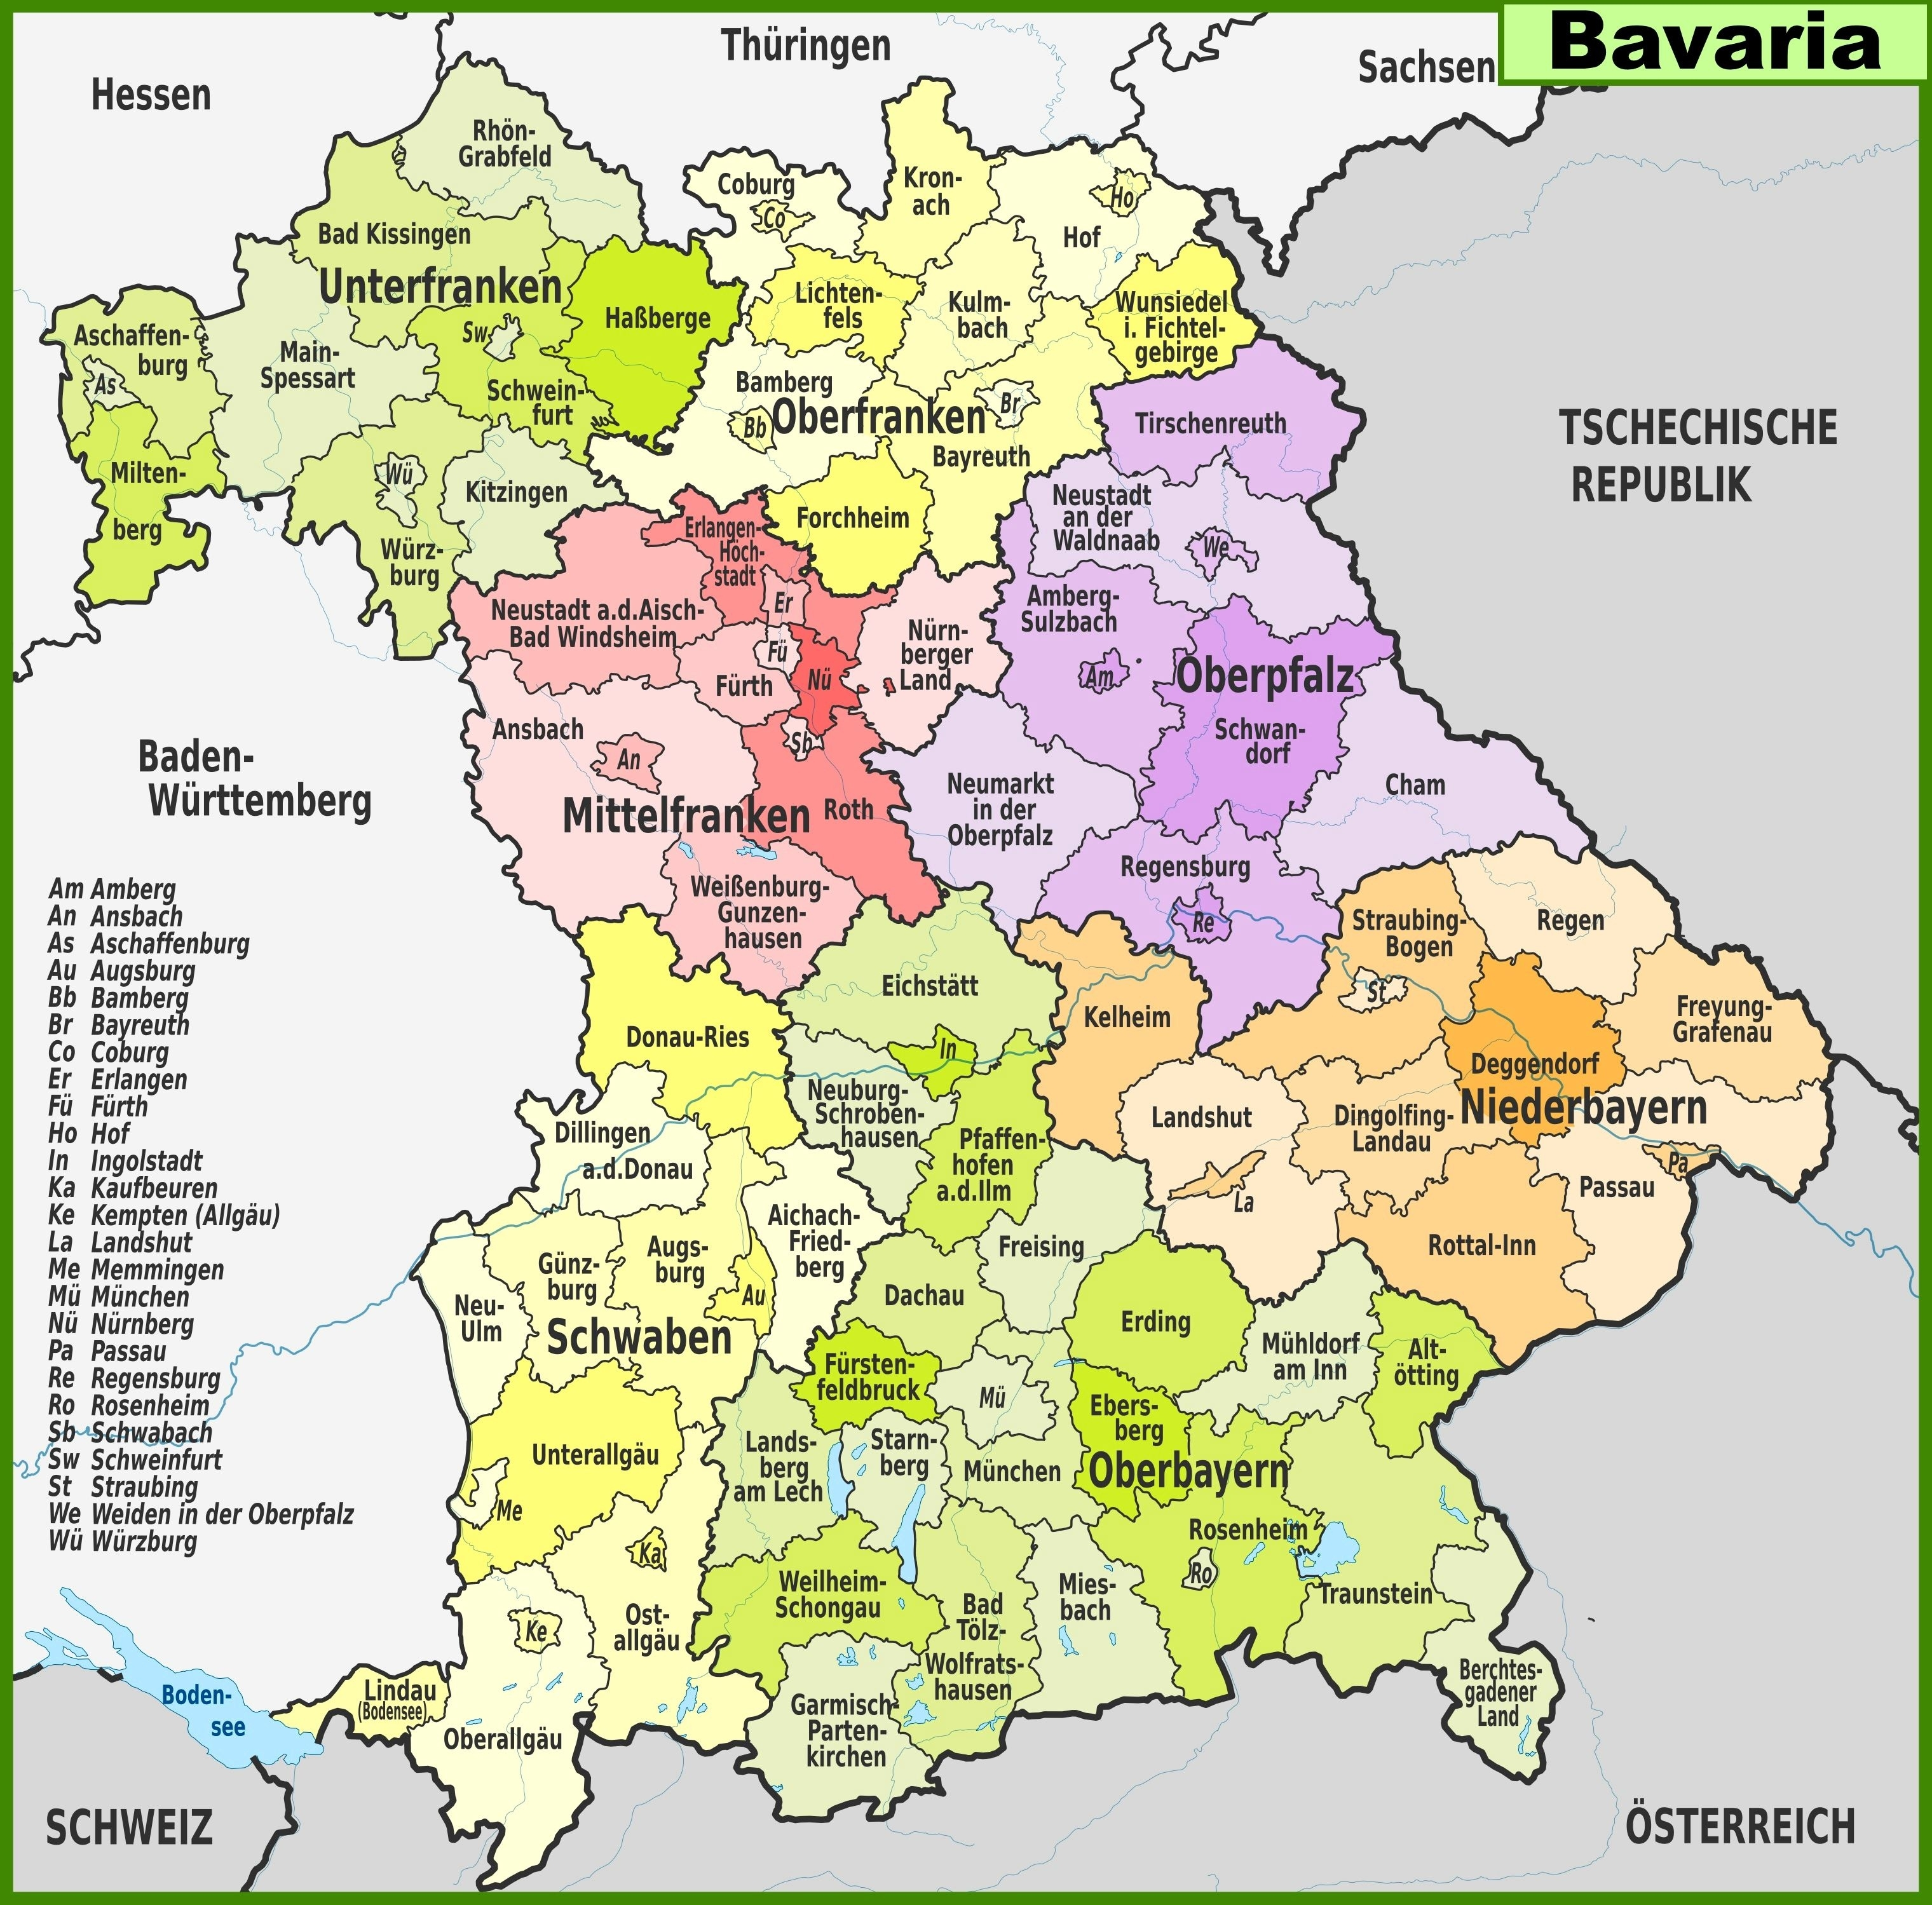 Large Bavaria Maps For Free Download And Print   High-Resolution And intended for Bavarian Alps Germany Map